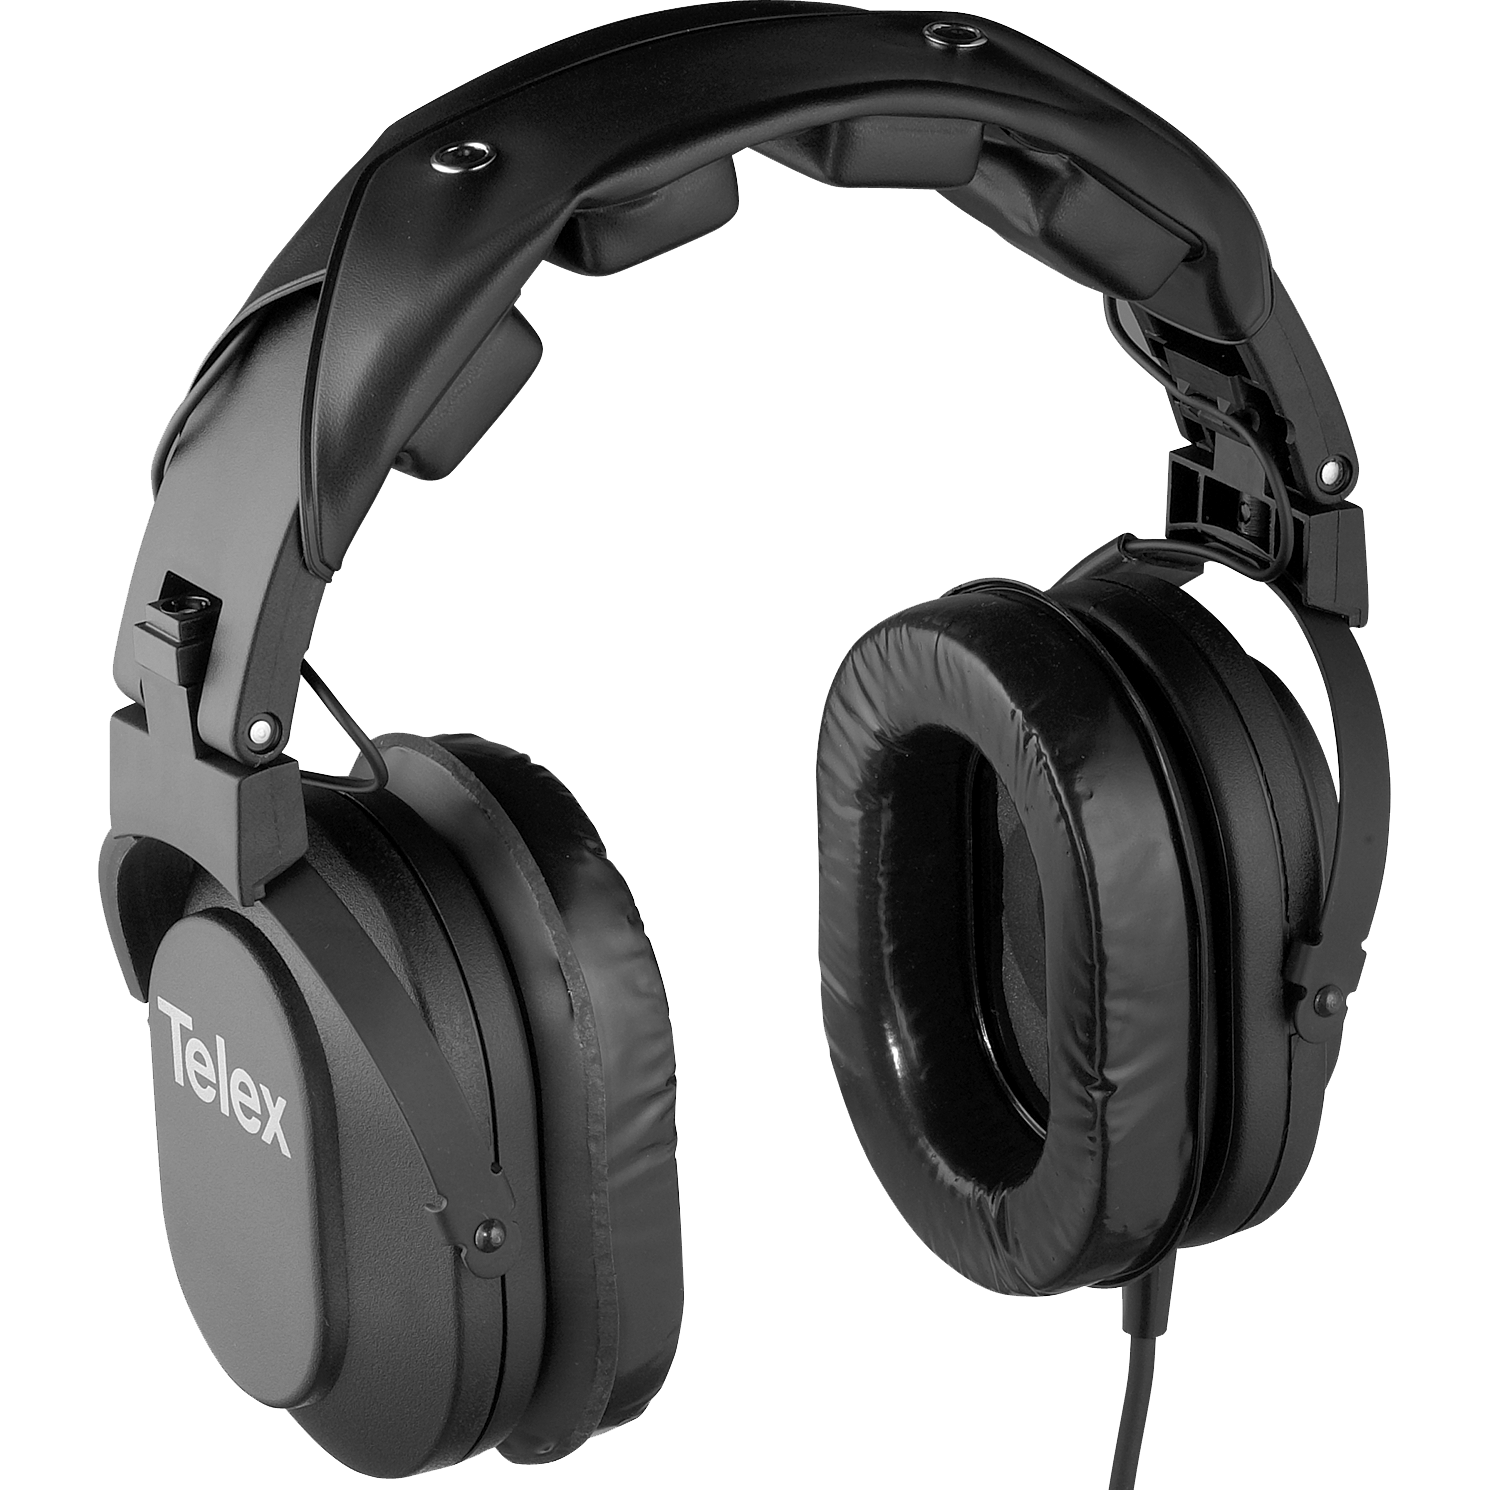 Headphones Png image #20163 - Headphones PNG - Headphones HD PNG